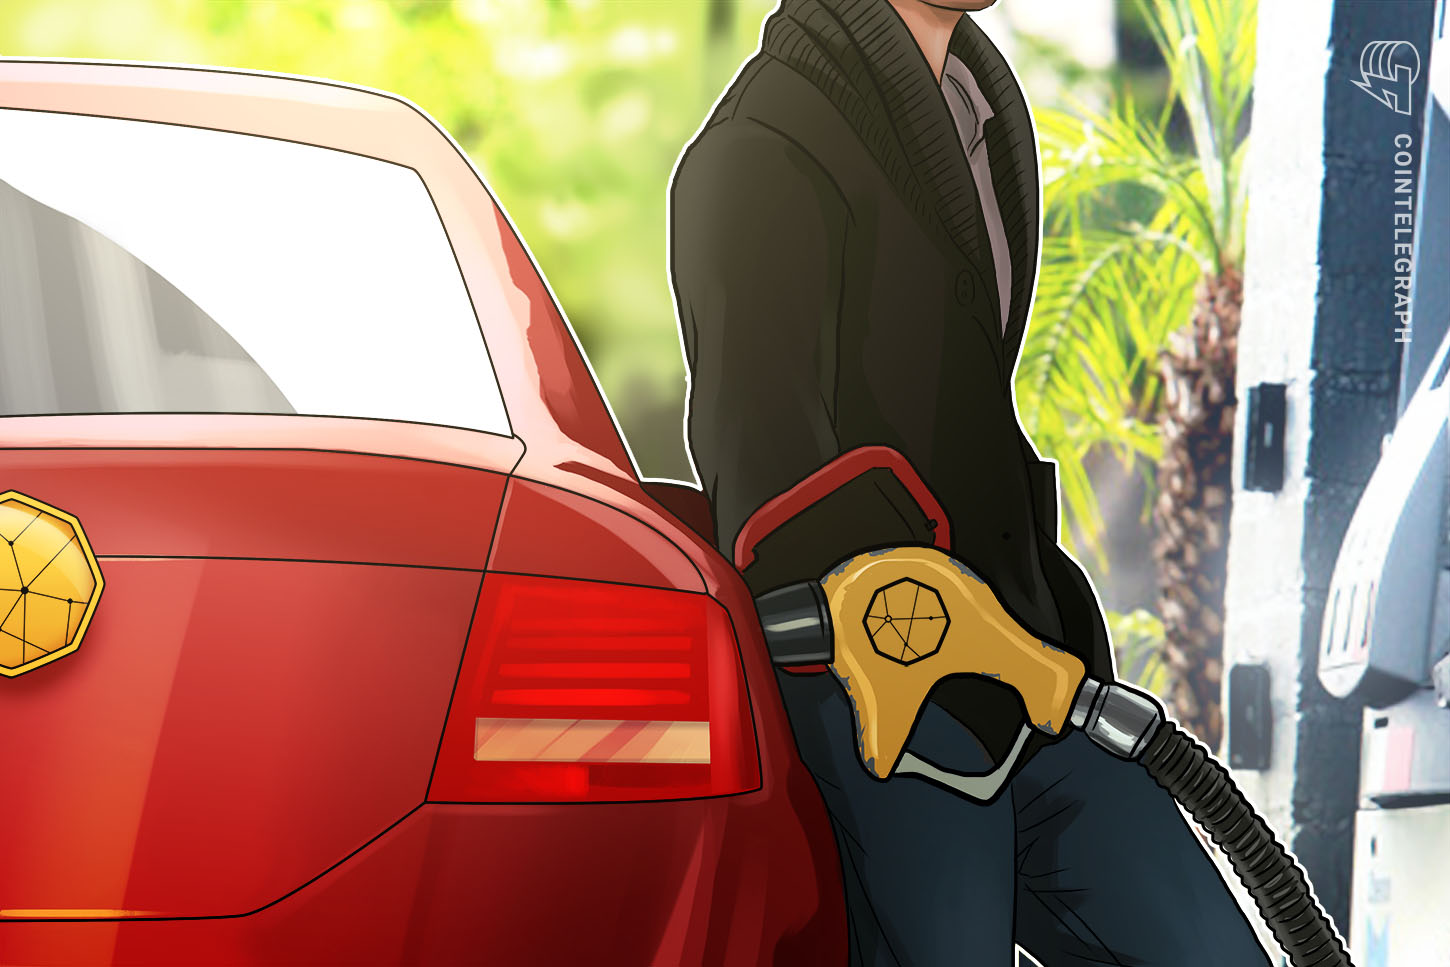 Different kind of gas fees — Electrocoin enables crypto petrol payments in Croatia